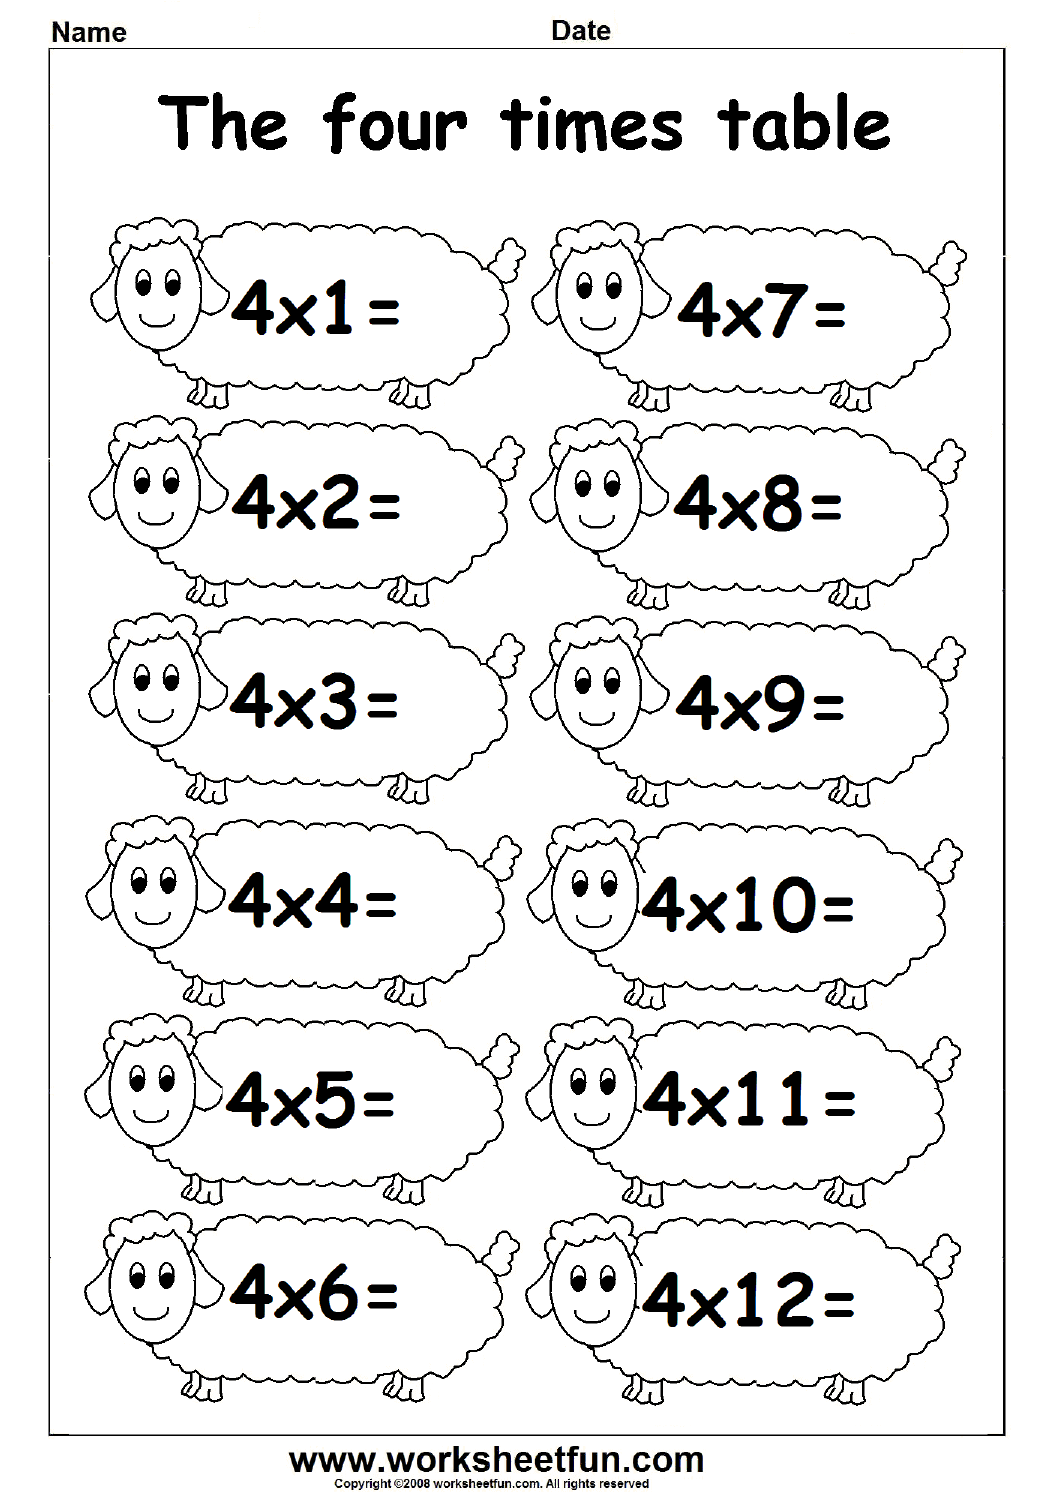 math worksheet : 1000 images about emma mathematics on pinterest  times tables  : Math Times Tables Worksheets